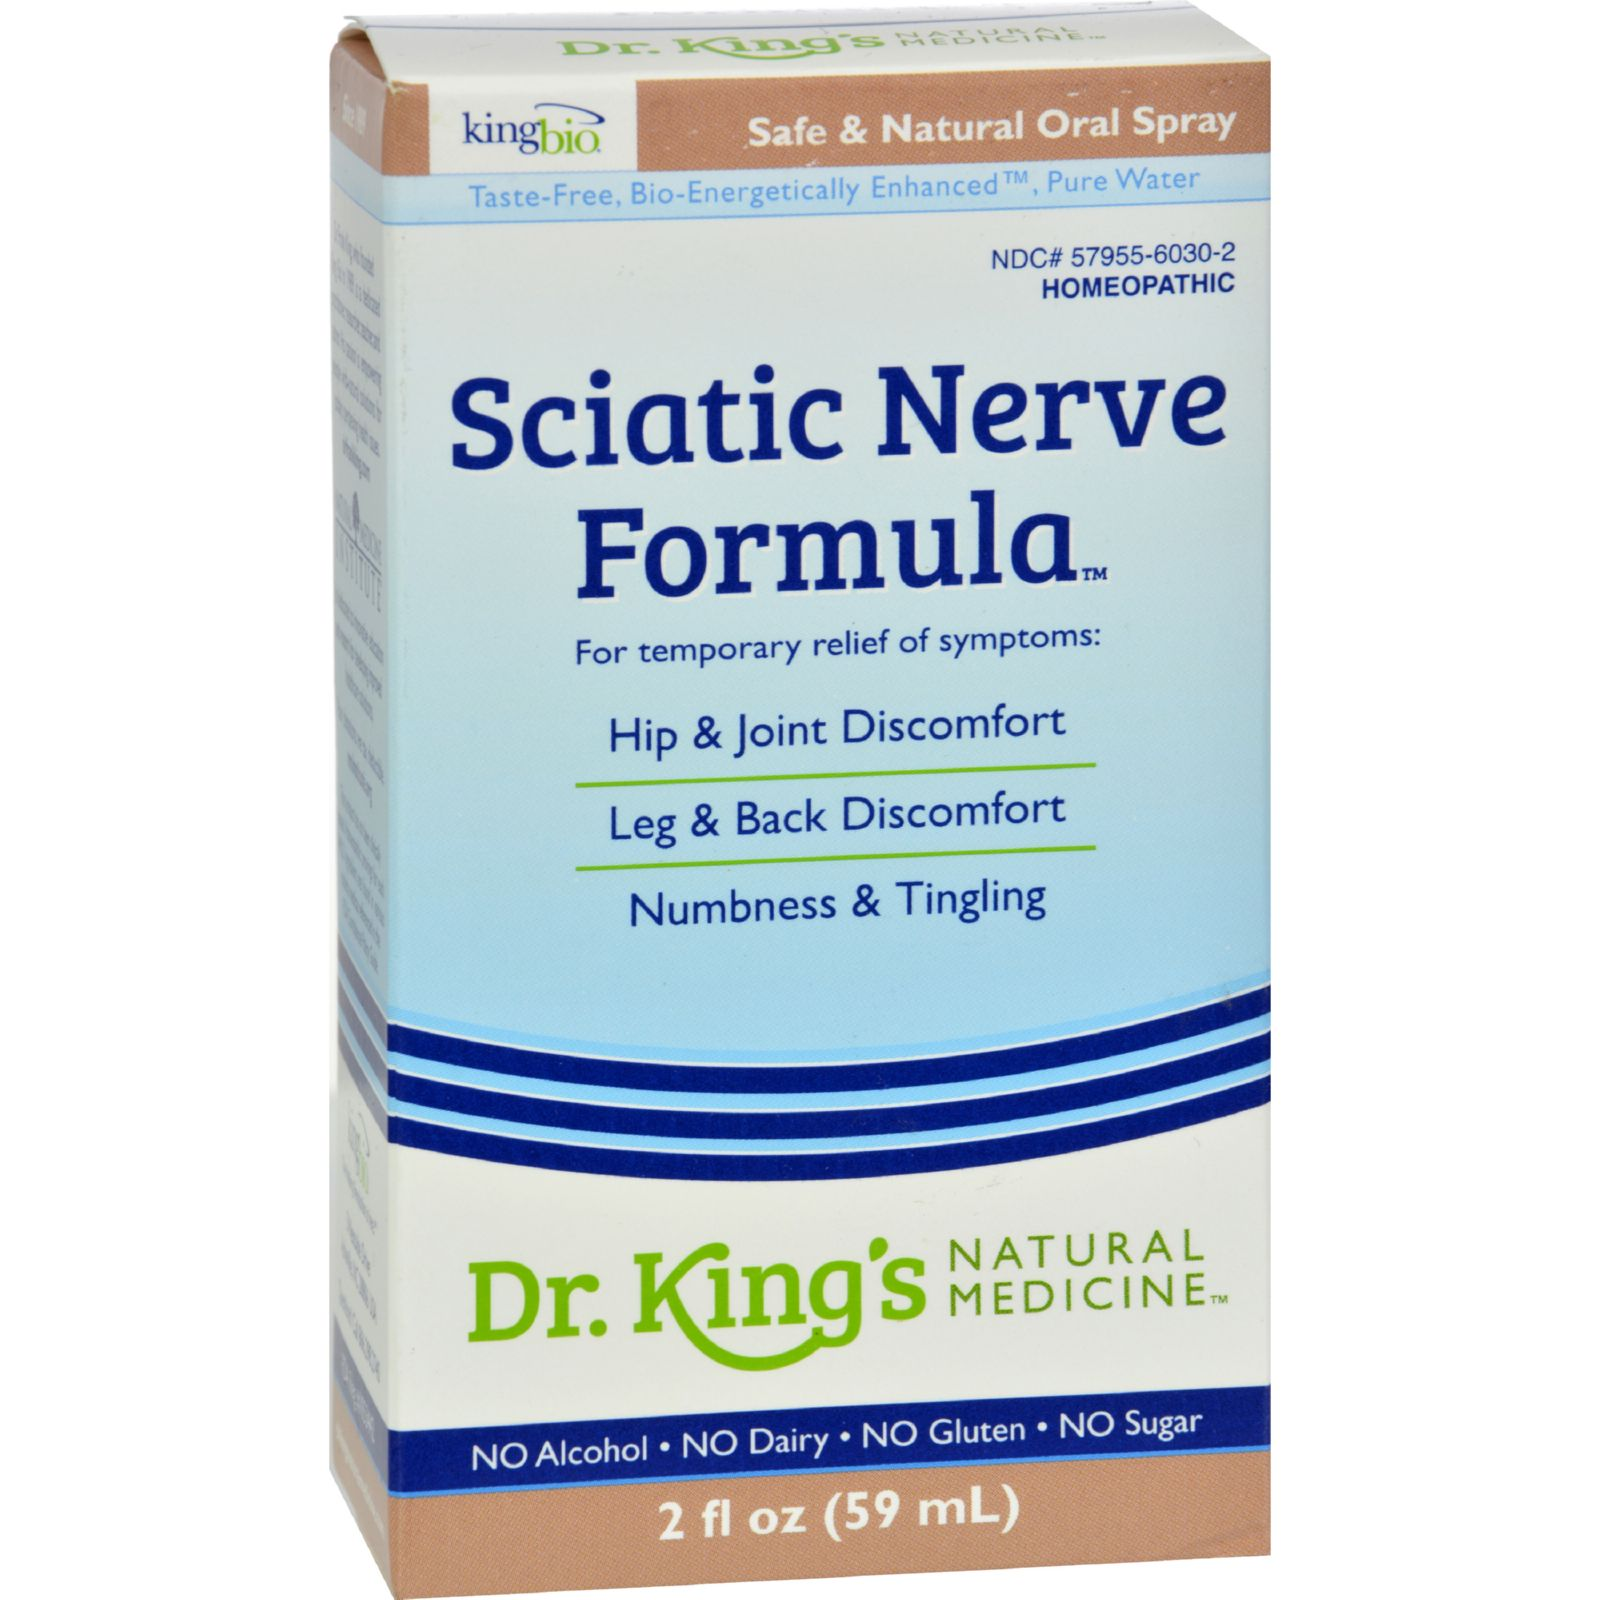 King Bio Homeopathic Natural Medicine Sciatic Free - 2 Fl Oz